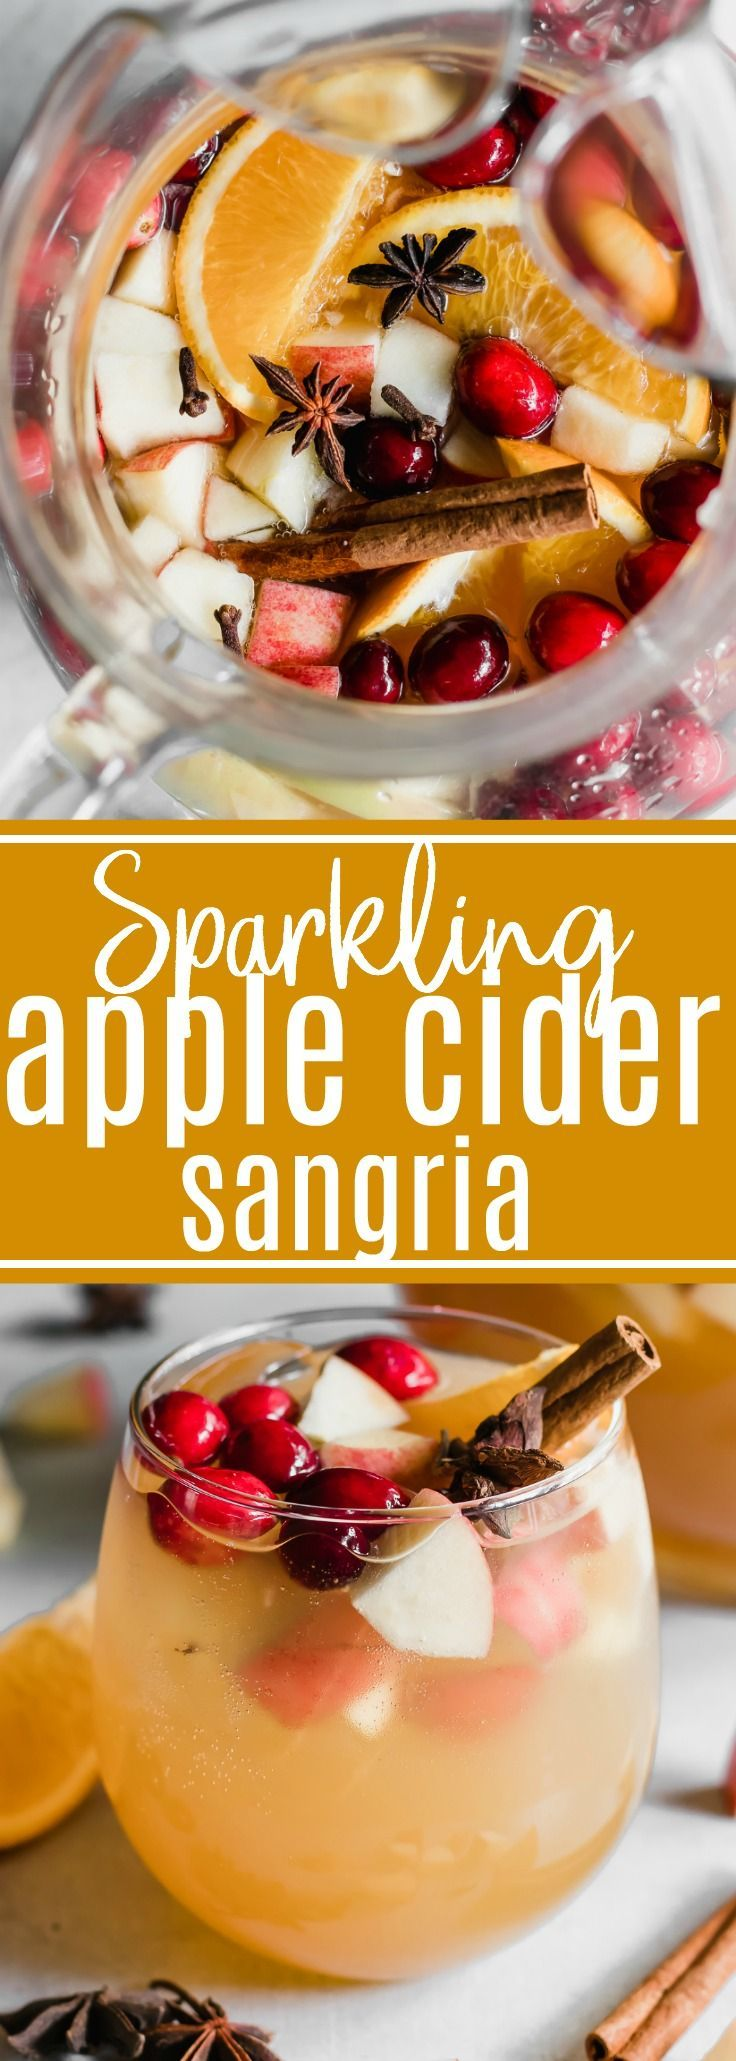 Sparkling Apple Cider Sangria. Sparkling Apple cider loaded up with chunks of apple, orange, cranberries, and all the best fall spices. No alcohol included makes this perfect for the entire family! #sangria #applecider #fall #drink